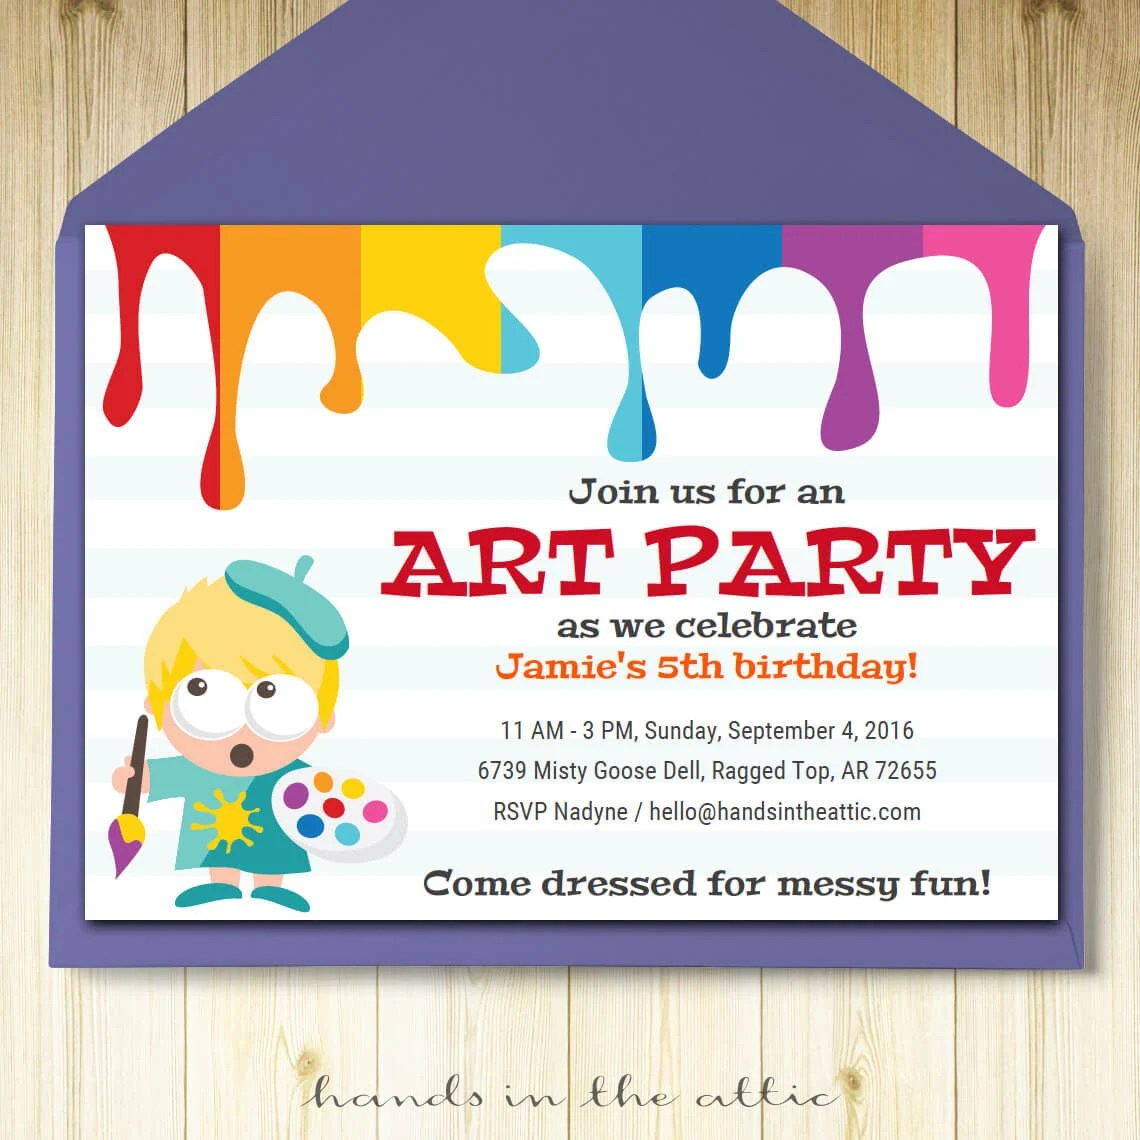 Art party invitation card template, printable kids painting birthday